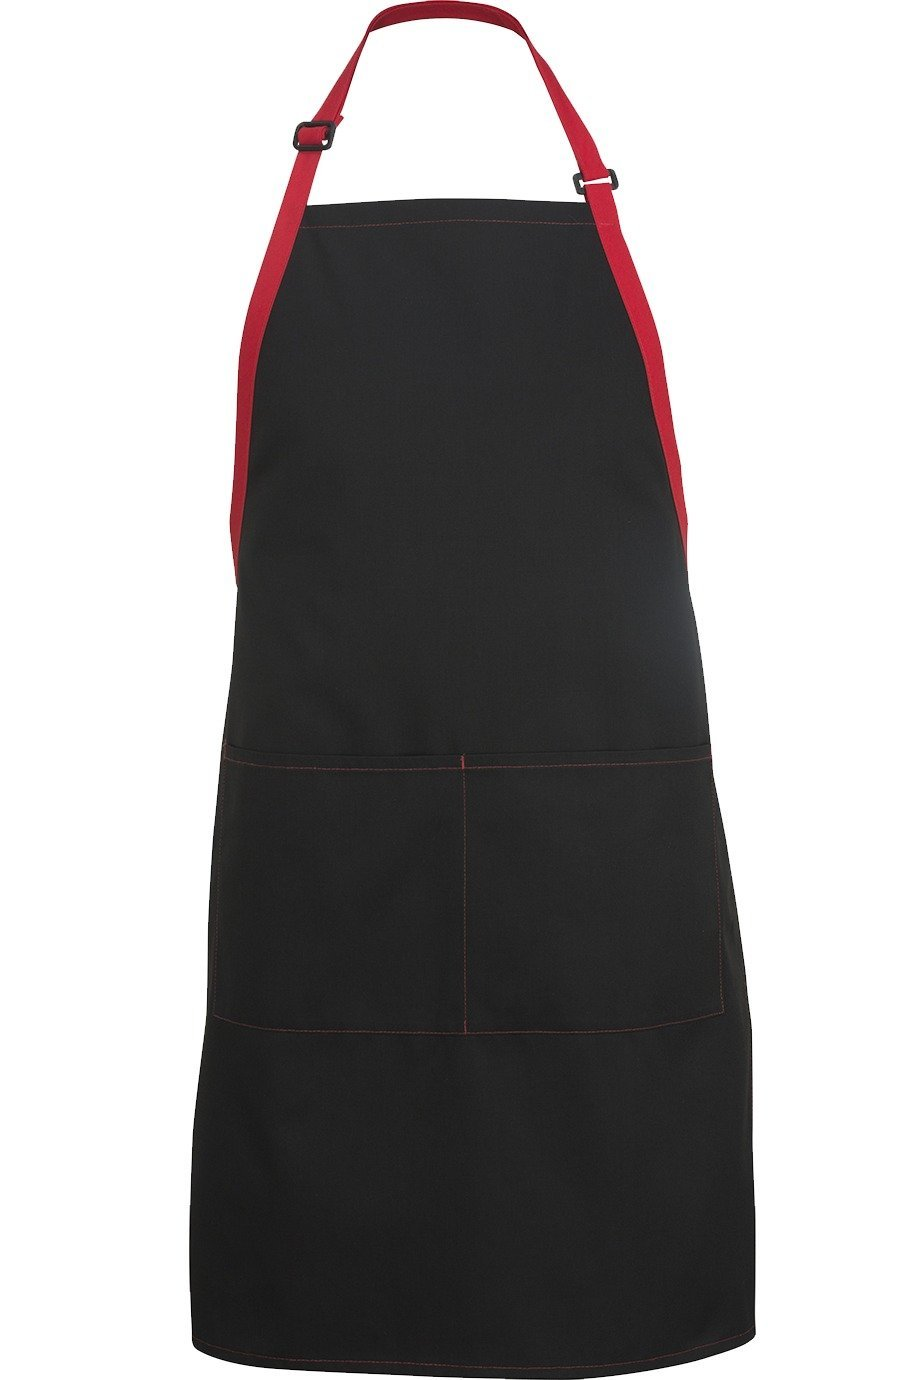 Black w/ Red Bib Color Block Adjustable Apron (2 Pockets)